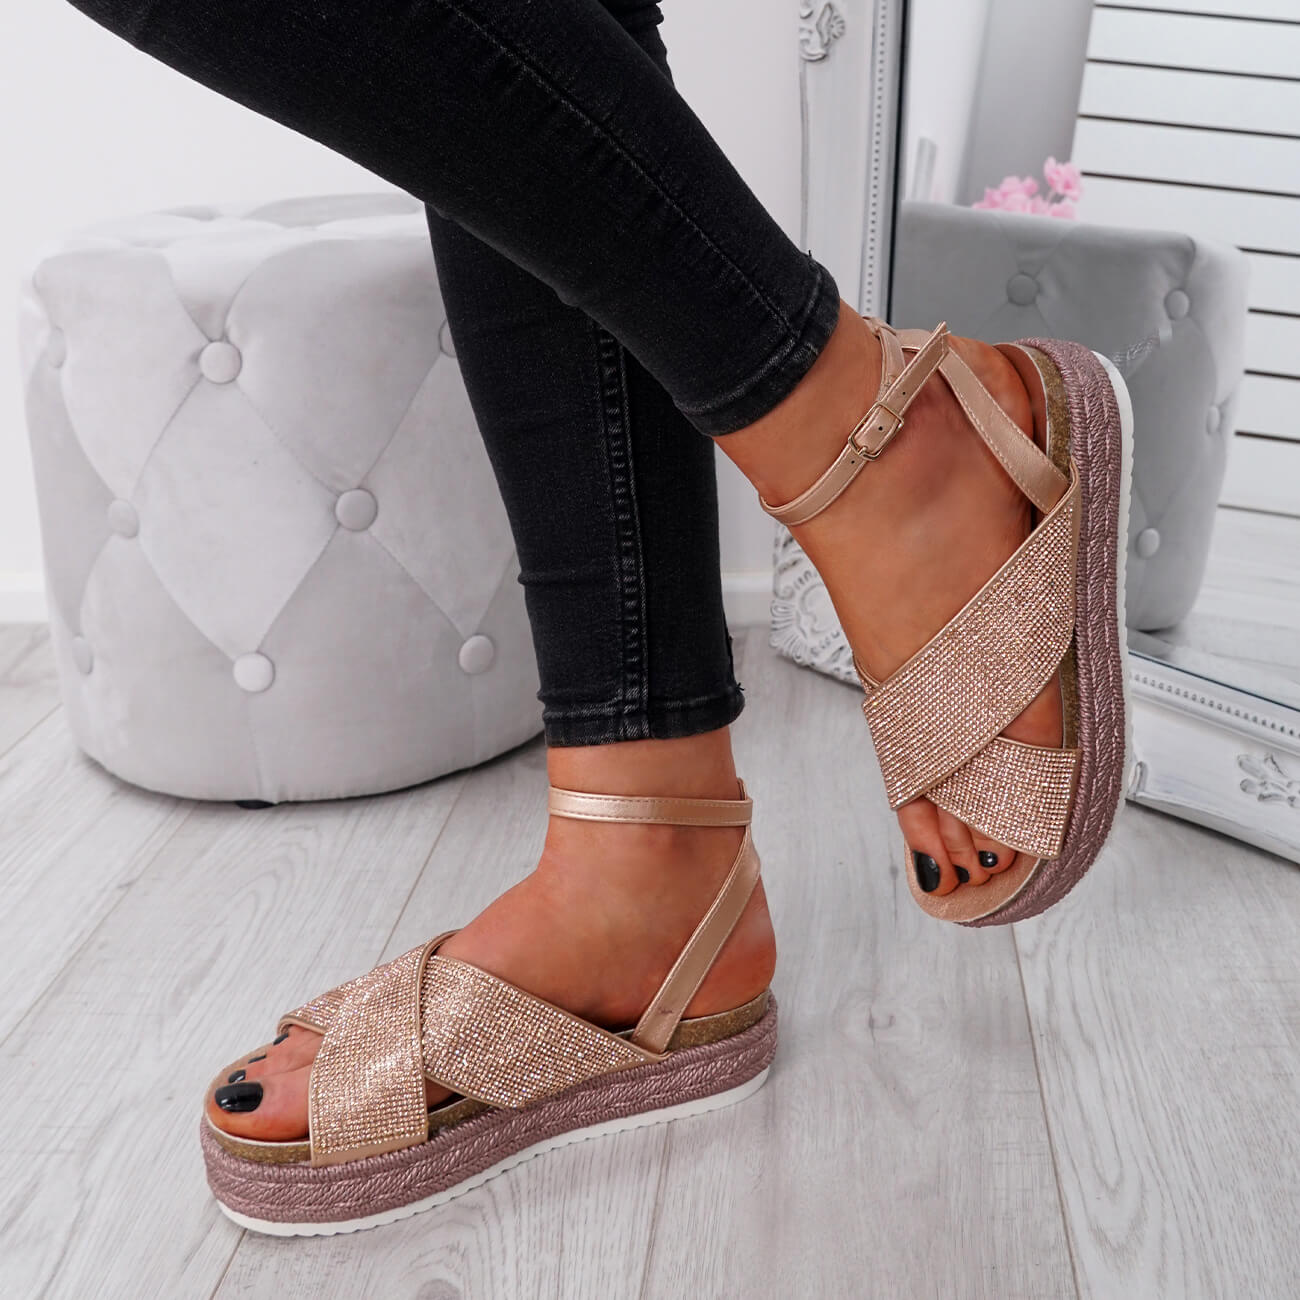 WOMENS-LADIES-ANKLE-STRAP-PEEP-TOE-STUDDED-LOW-HEEL-SANDALS-SHOES-SIZE-UK thumbnail 13